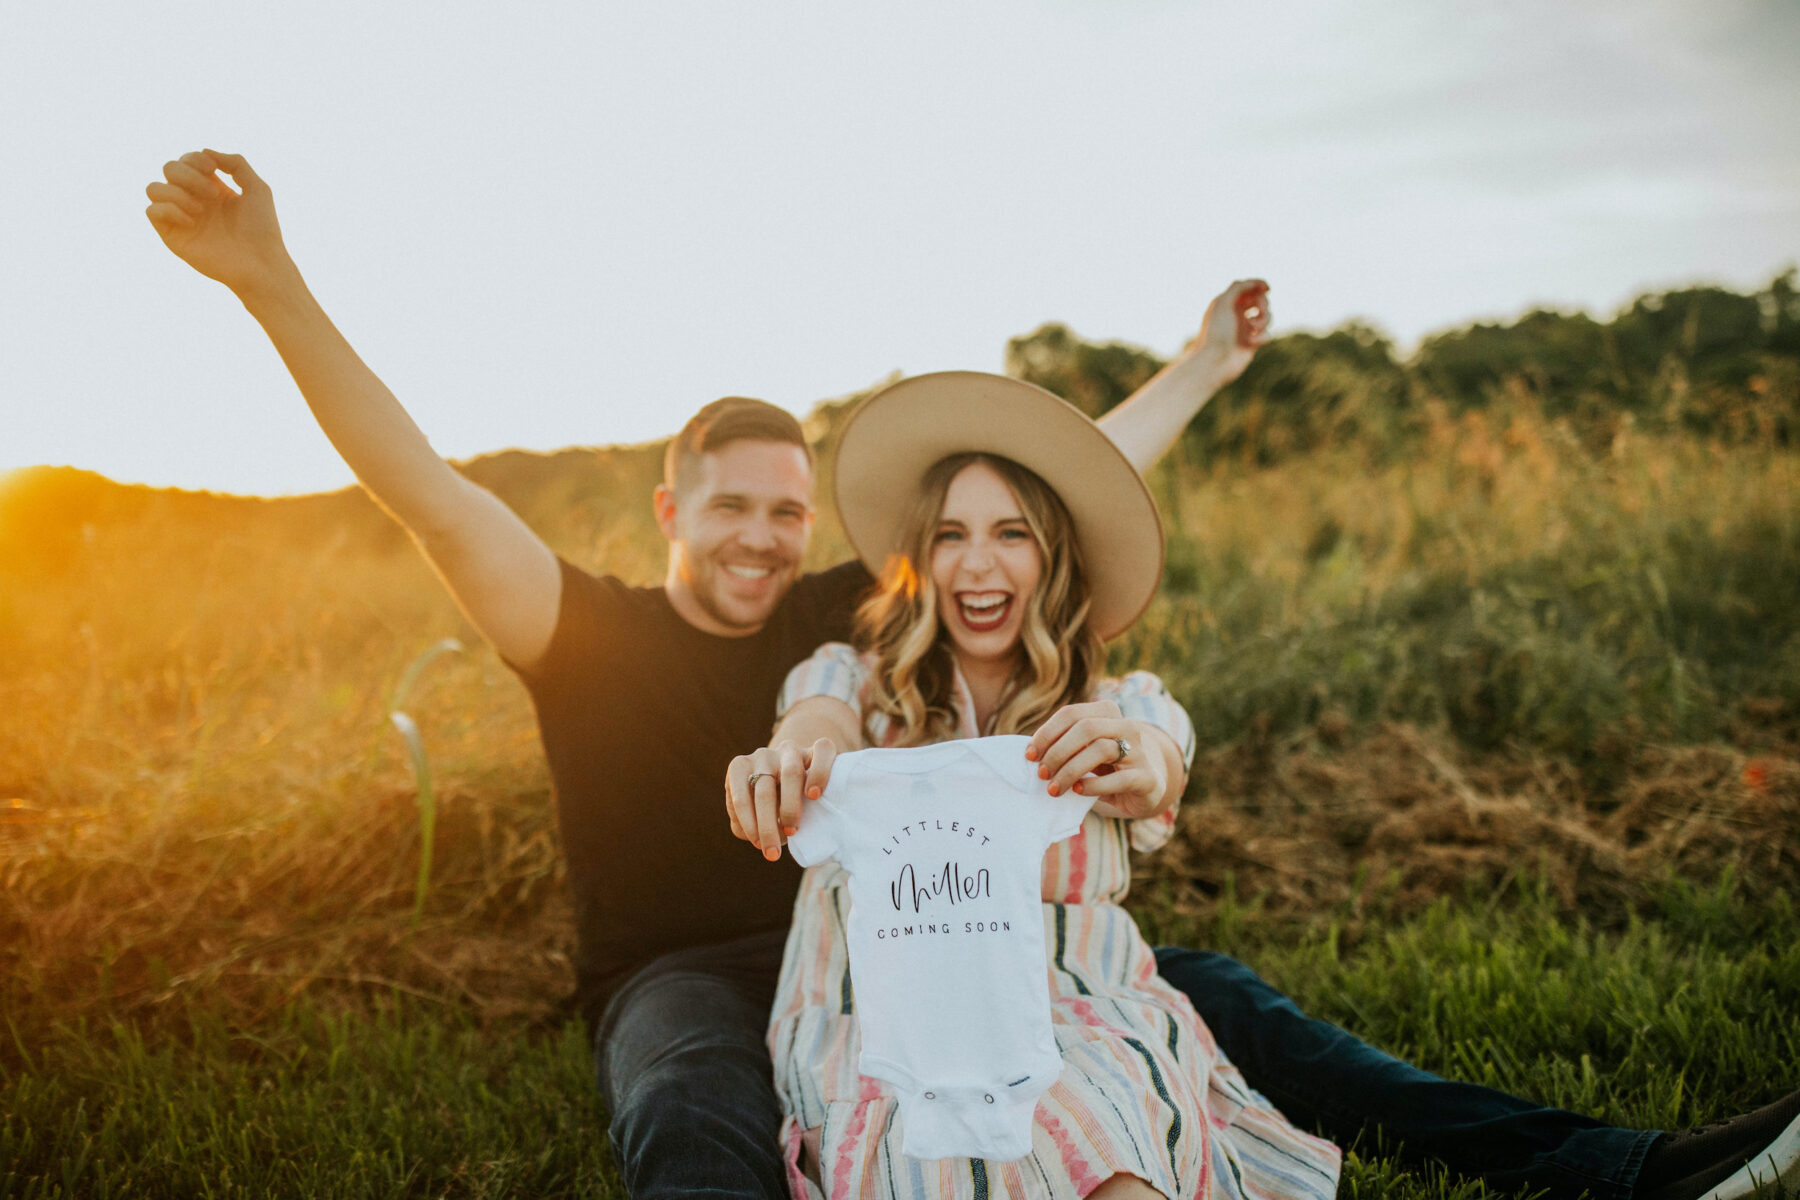 Sunlit Baby Announcement Photo Session featured on Nashville Baby Guide